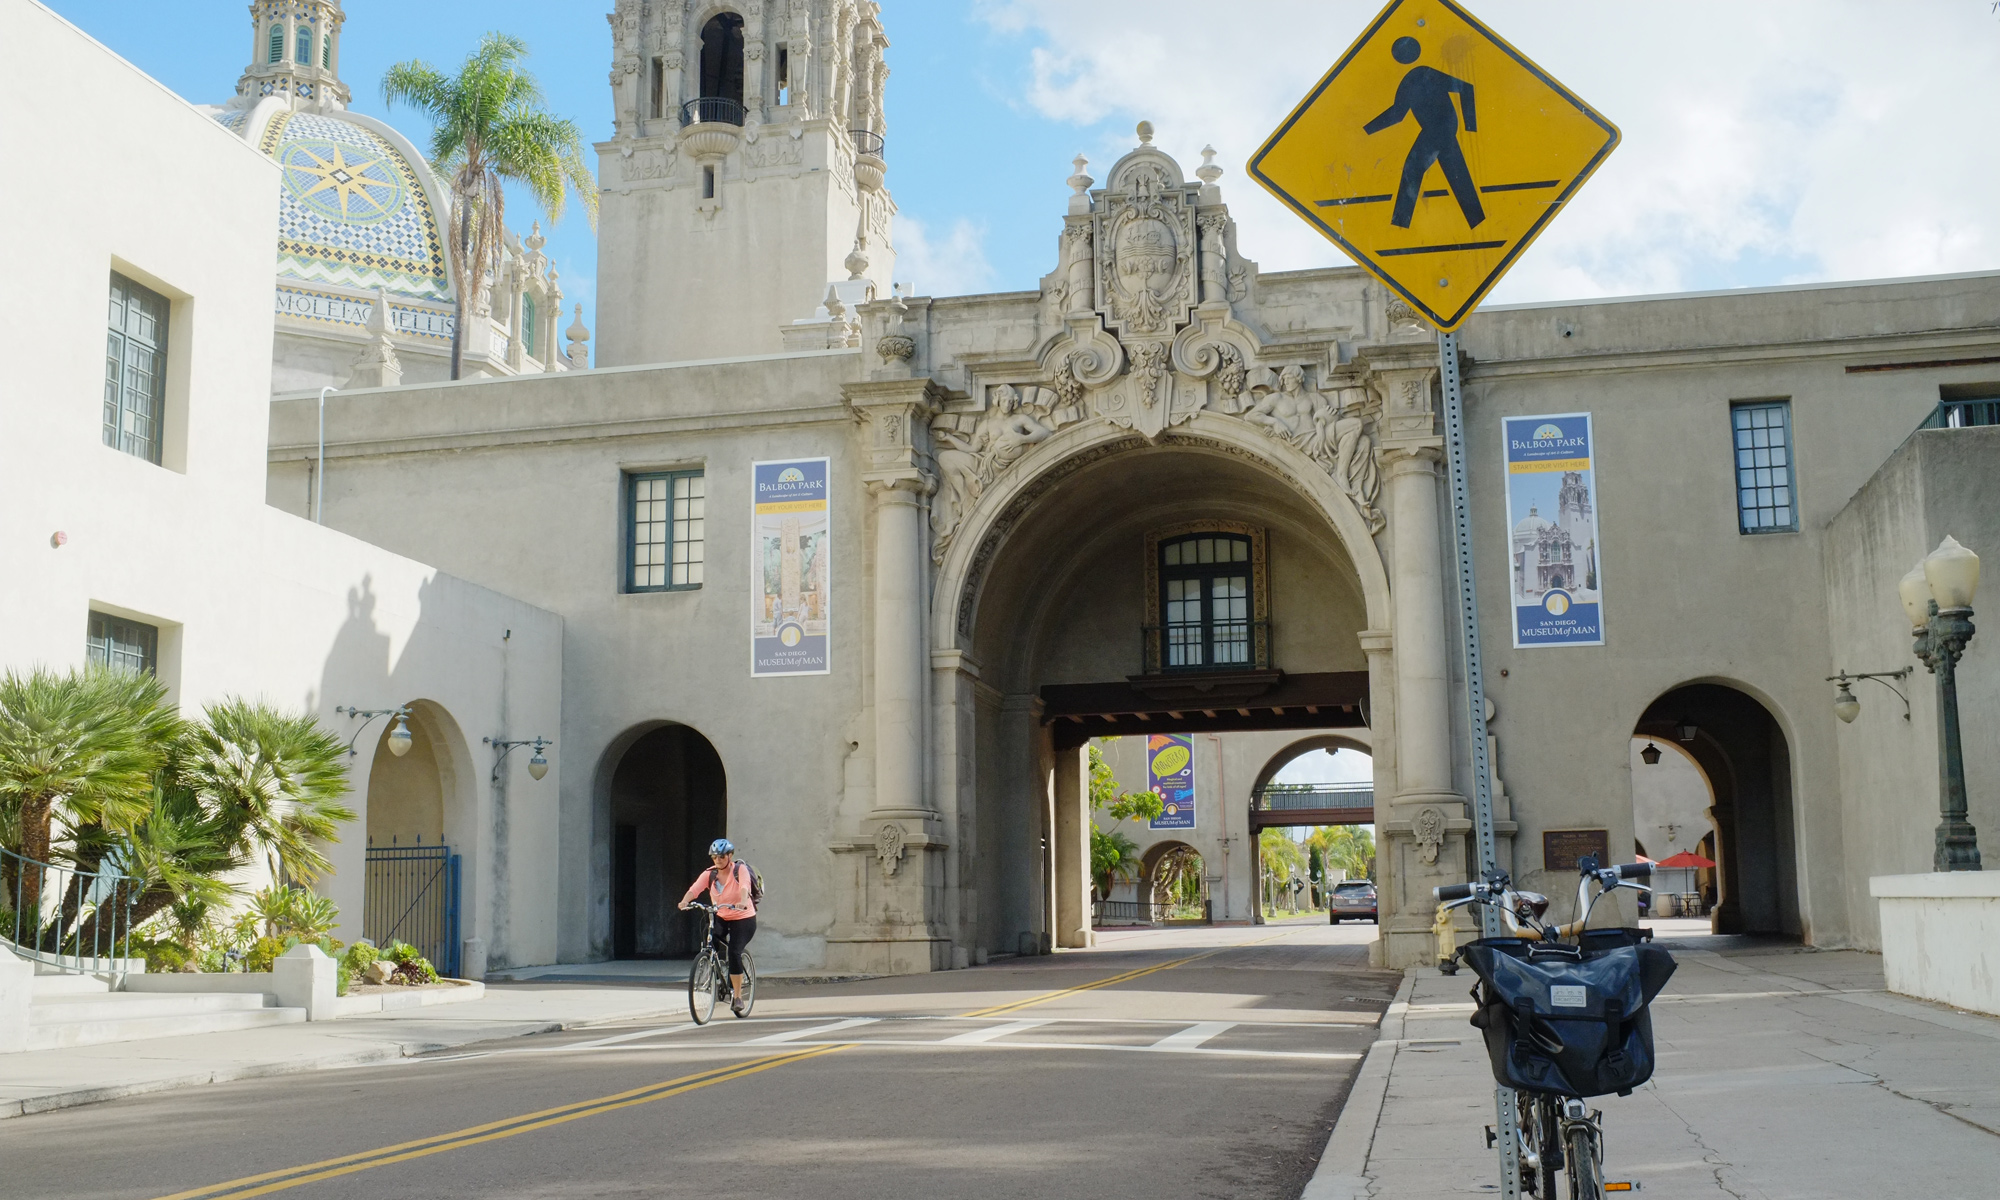 Balboa Park's grand entrance to museums like the Museum of Man and Museum of Art.